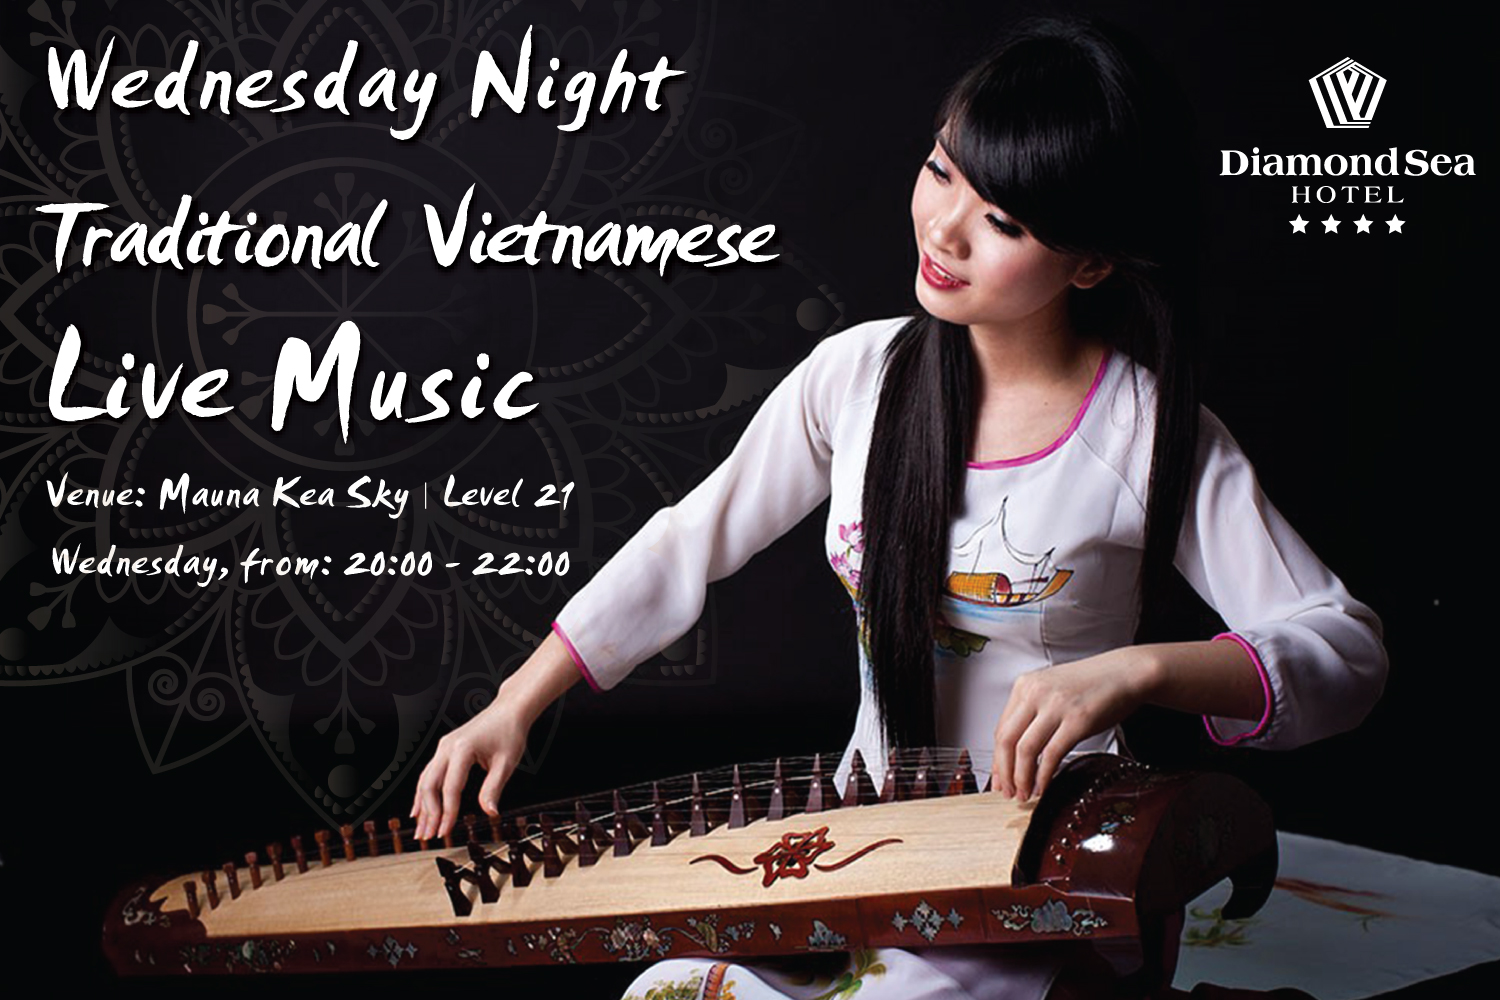 Traditional Vietnamese Live Music every Wednesday at Mauna Kea Sky